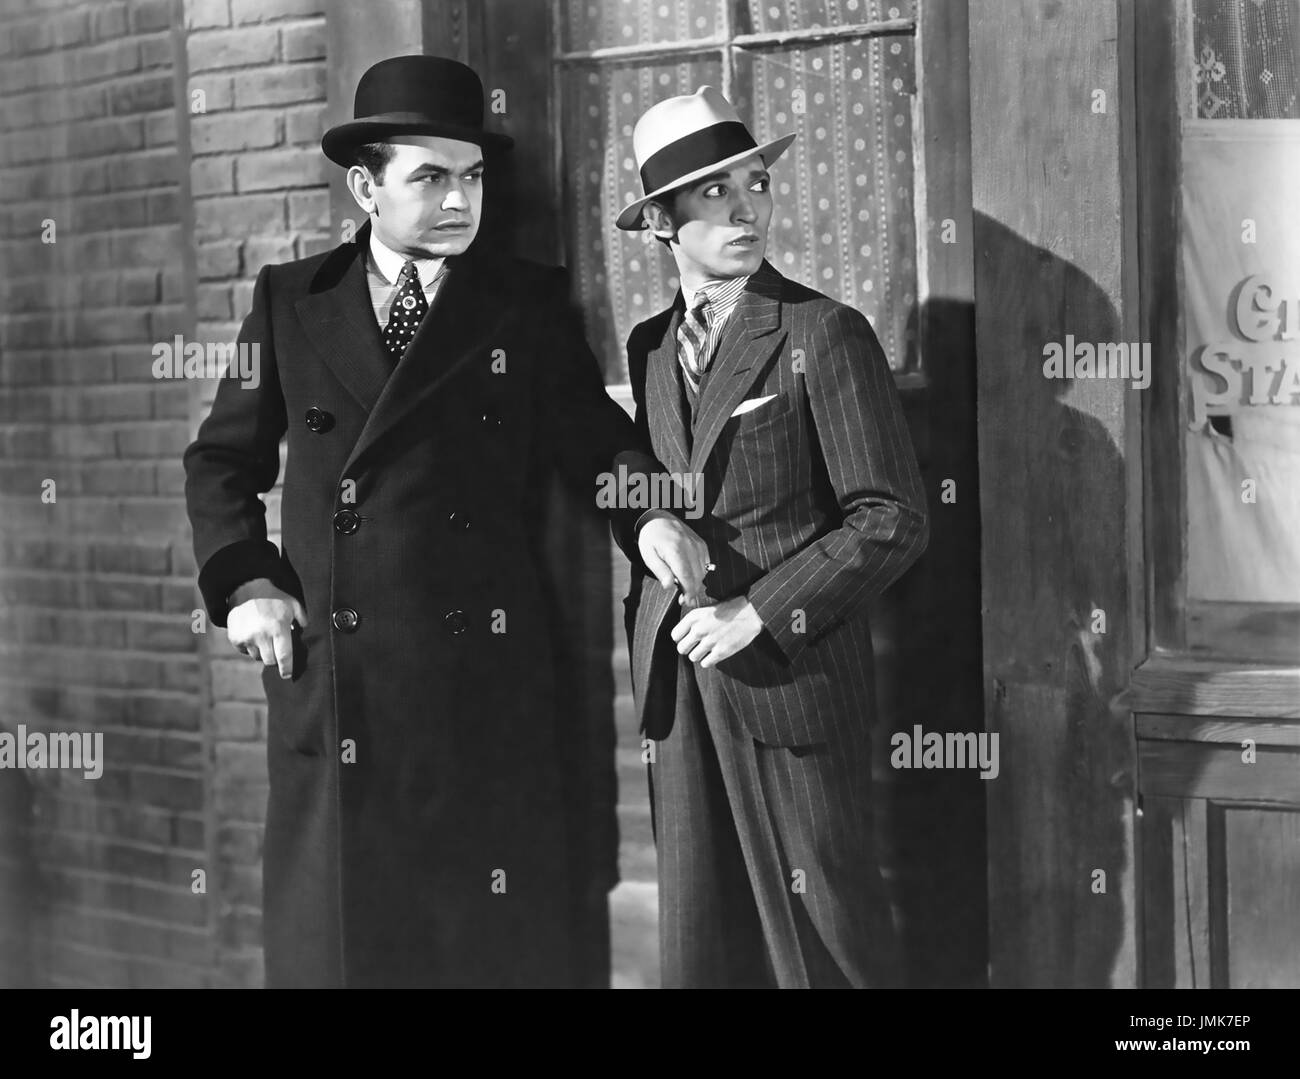 LITTLE CAESAR 1931 Warner Bros film with Edward G. Robinson at right and George E. Stone - Stock Image